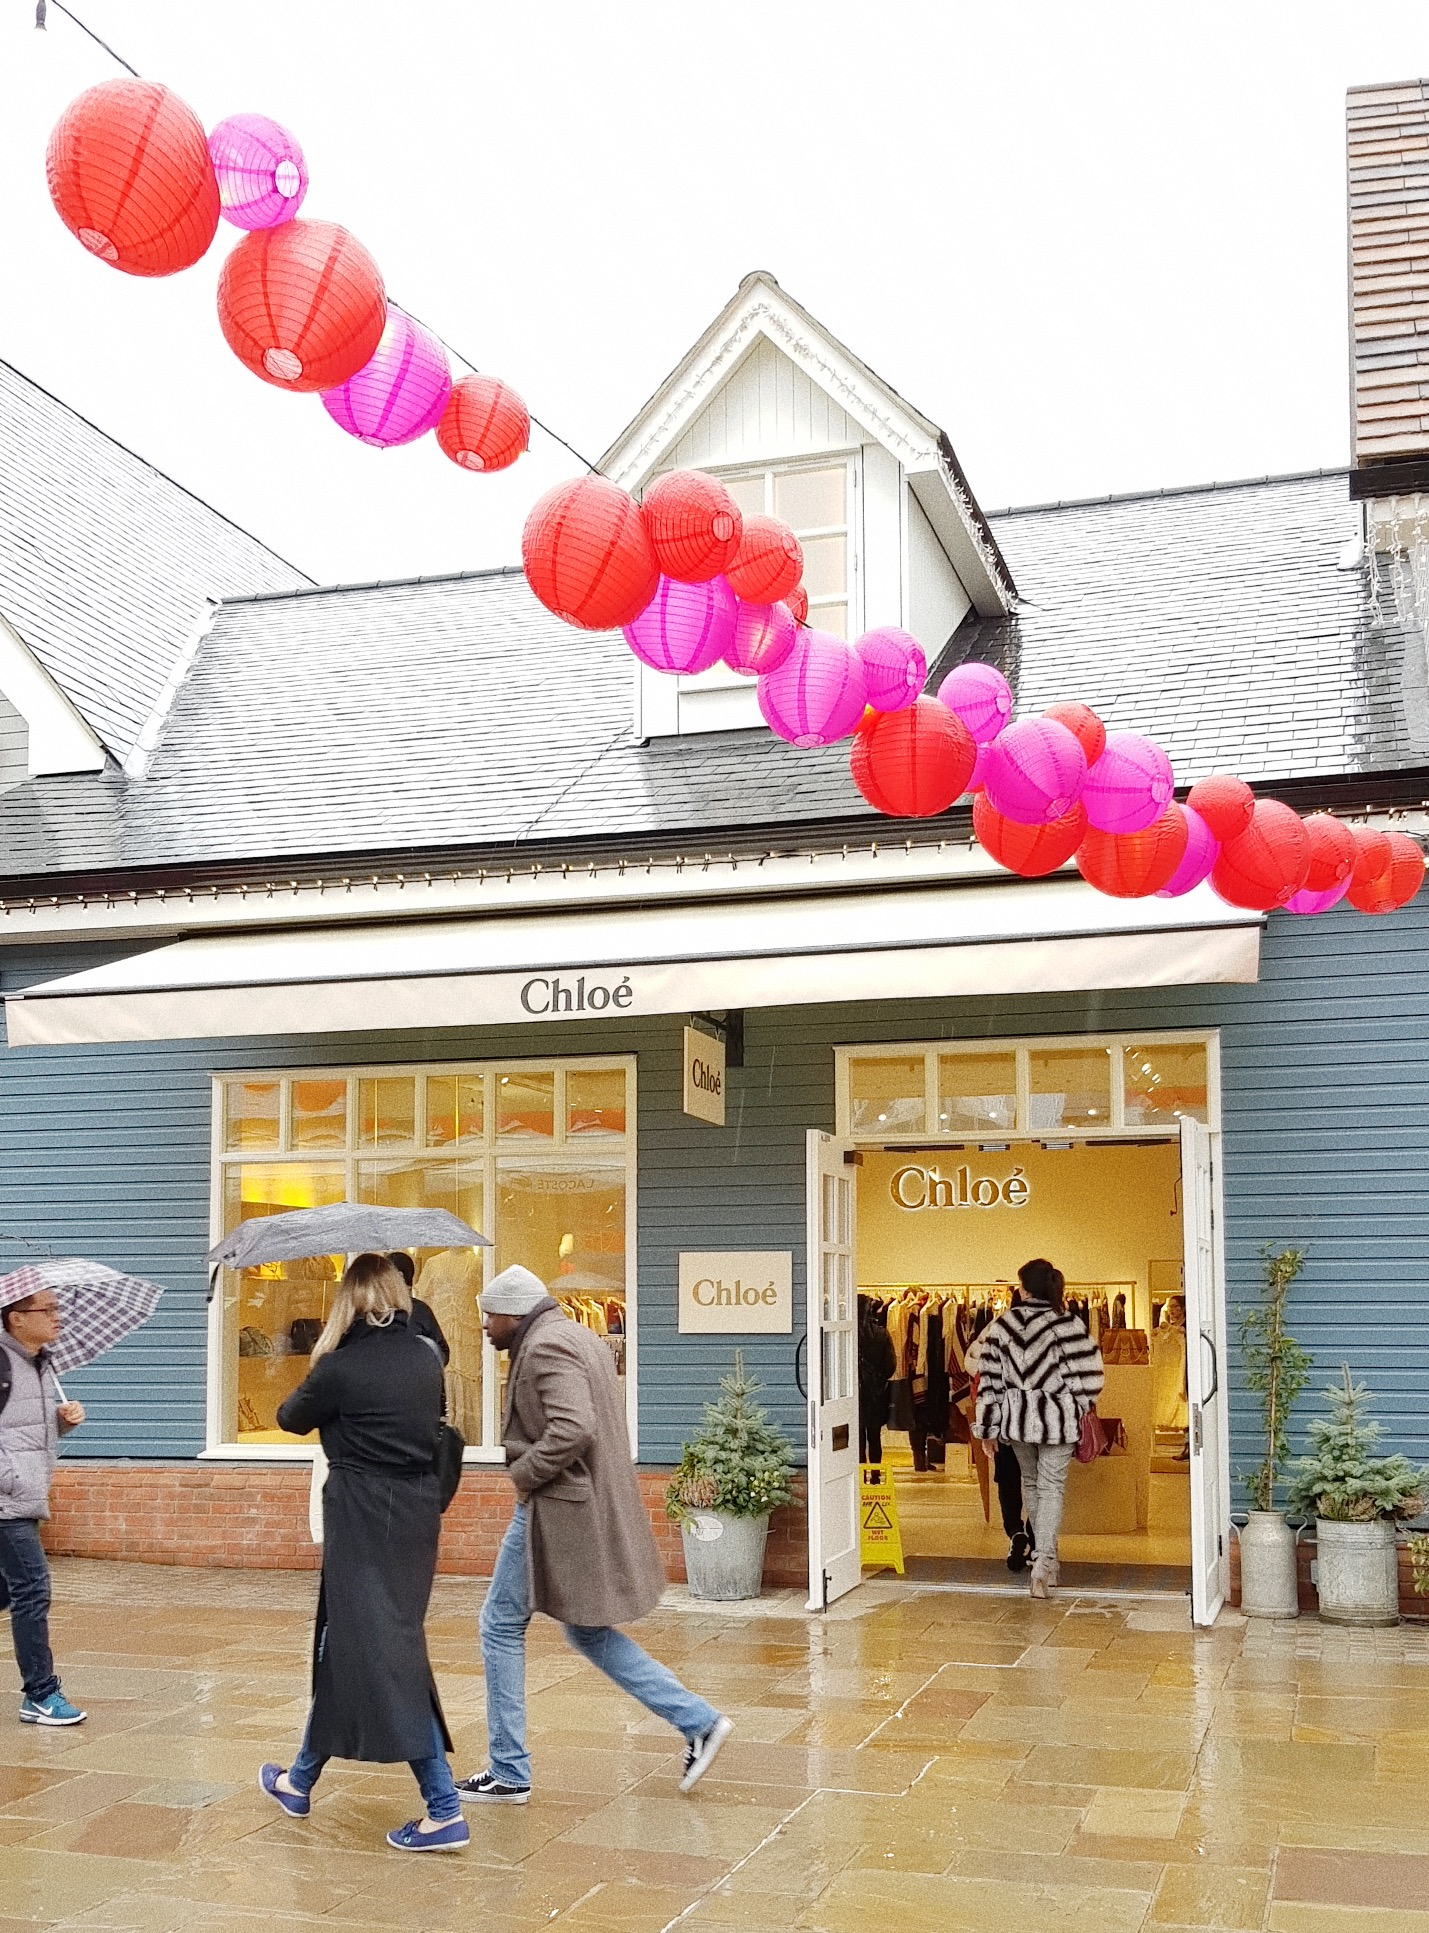 chloe store london bicester village uk